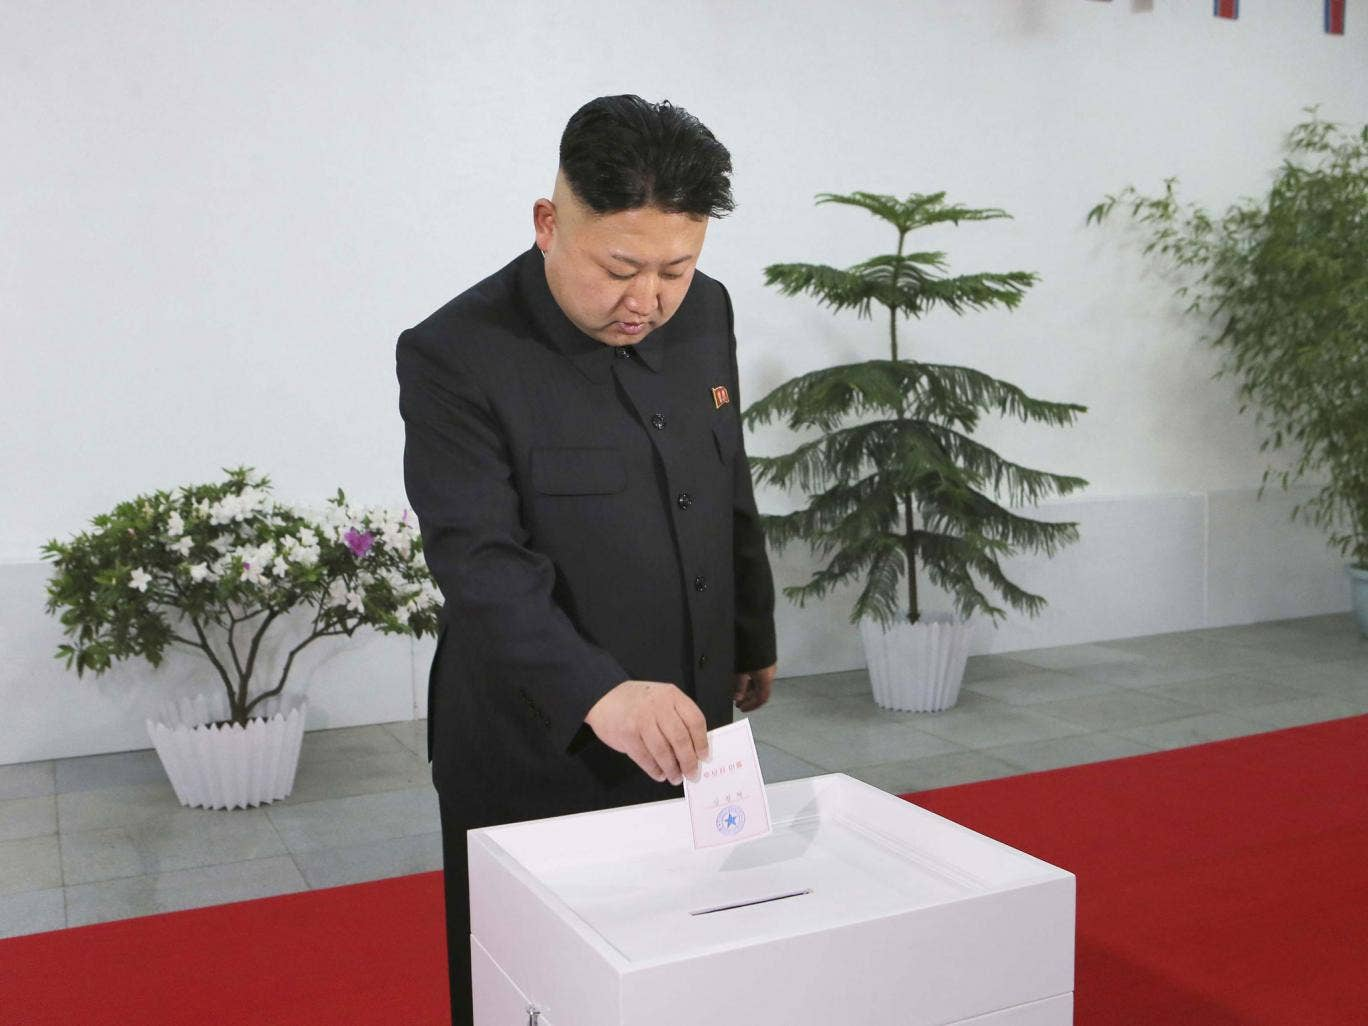 North Korean leader Kim Jong Un takes part in the election of a deputy to the Supreme People's Assembly at sub-constituency No. 43 of Constituency No. 105